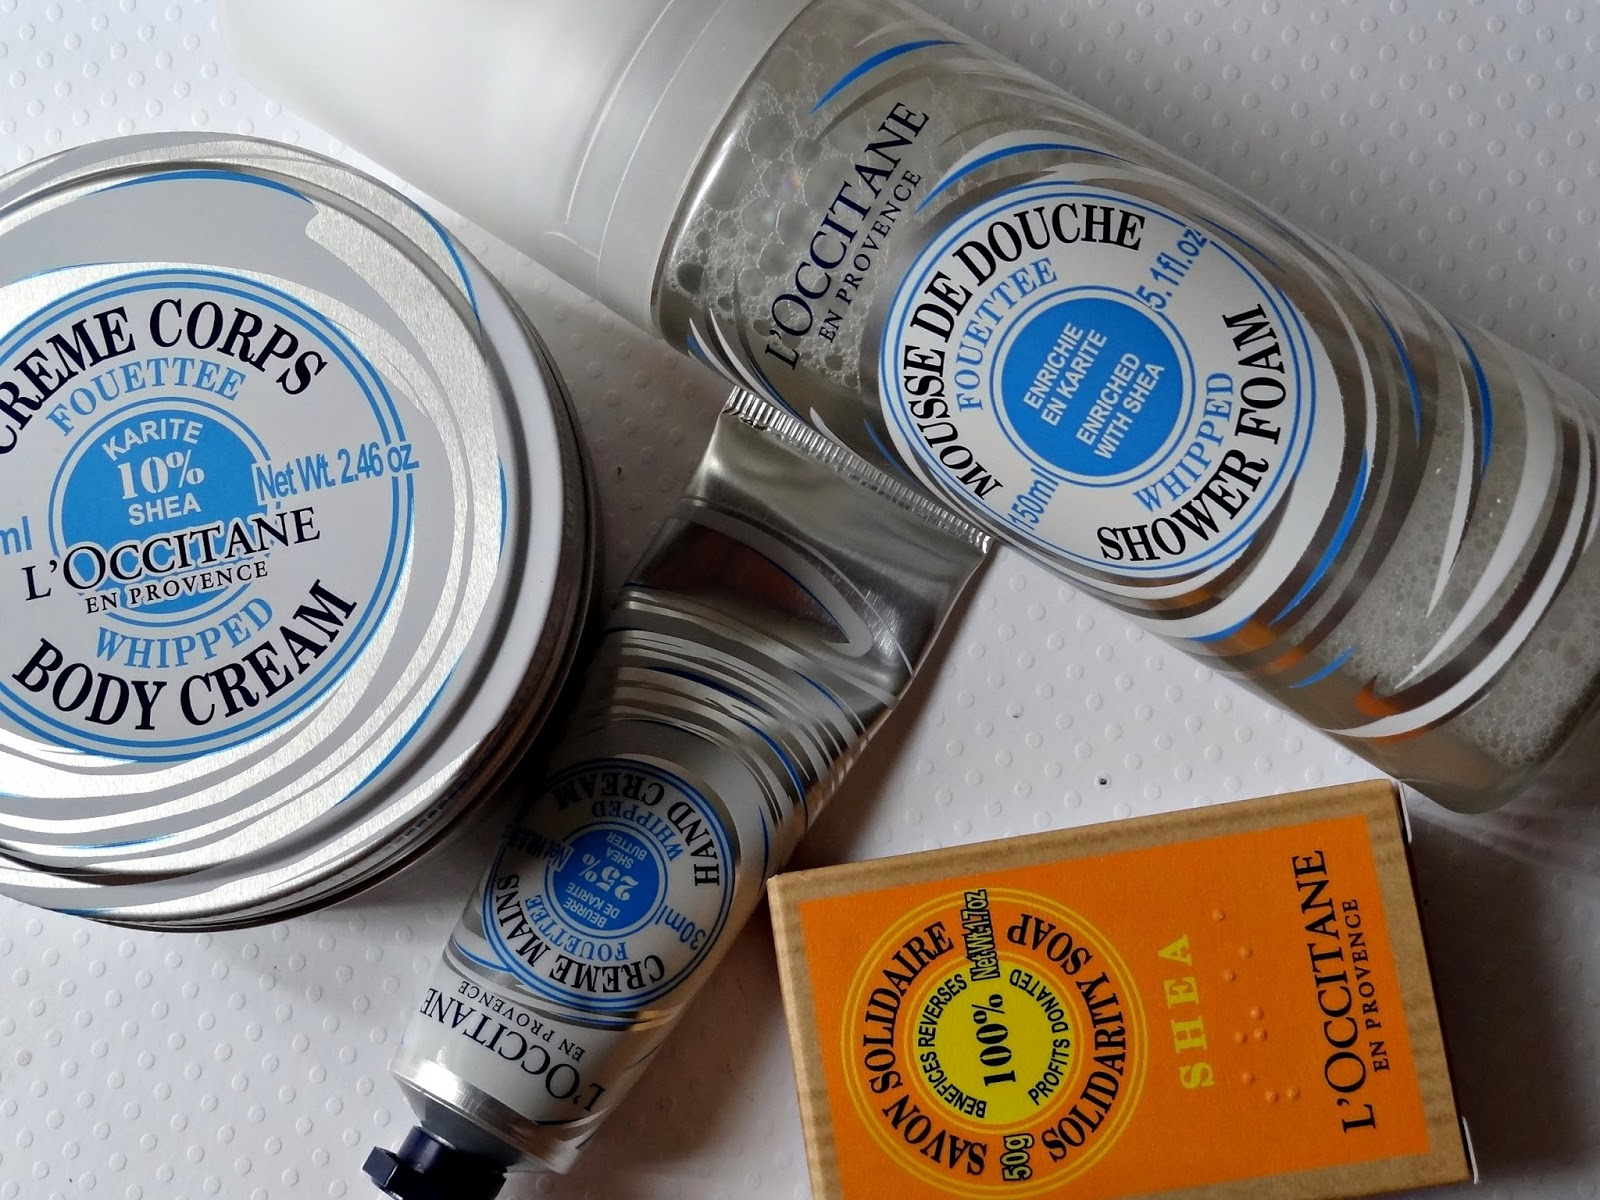 L'Occitane Shea Whipped Body Care Range and Solidarity Soap